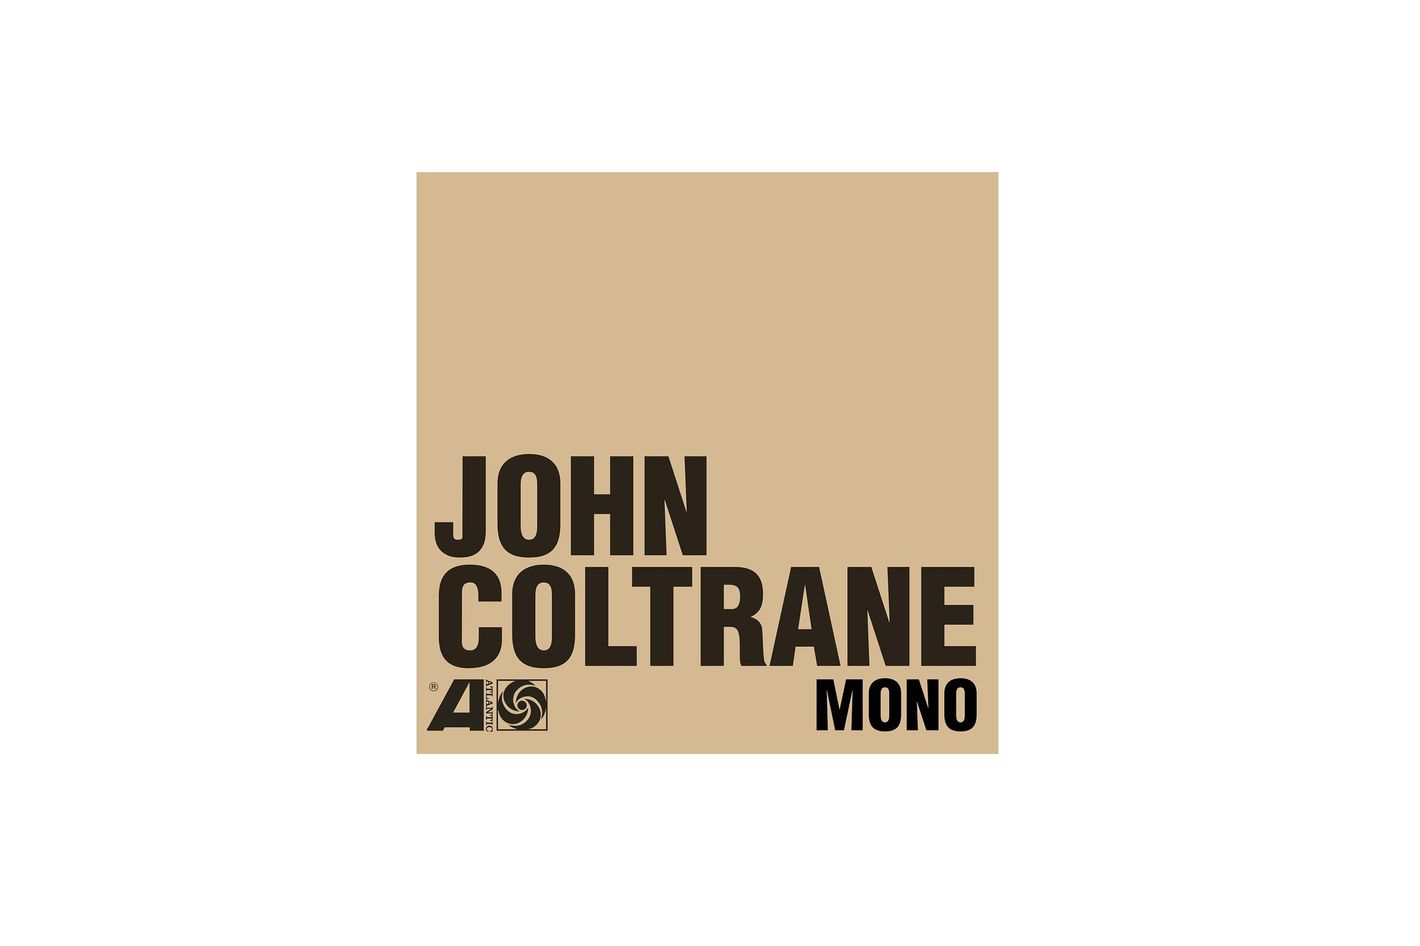 John Coltrane, The Atlantic Years in Mono